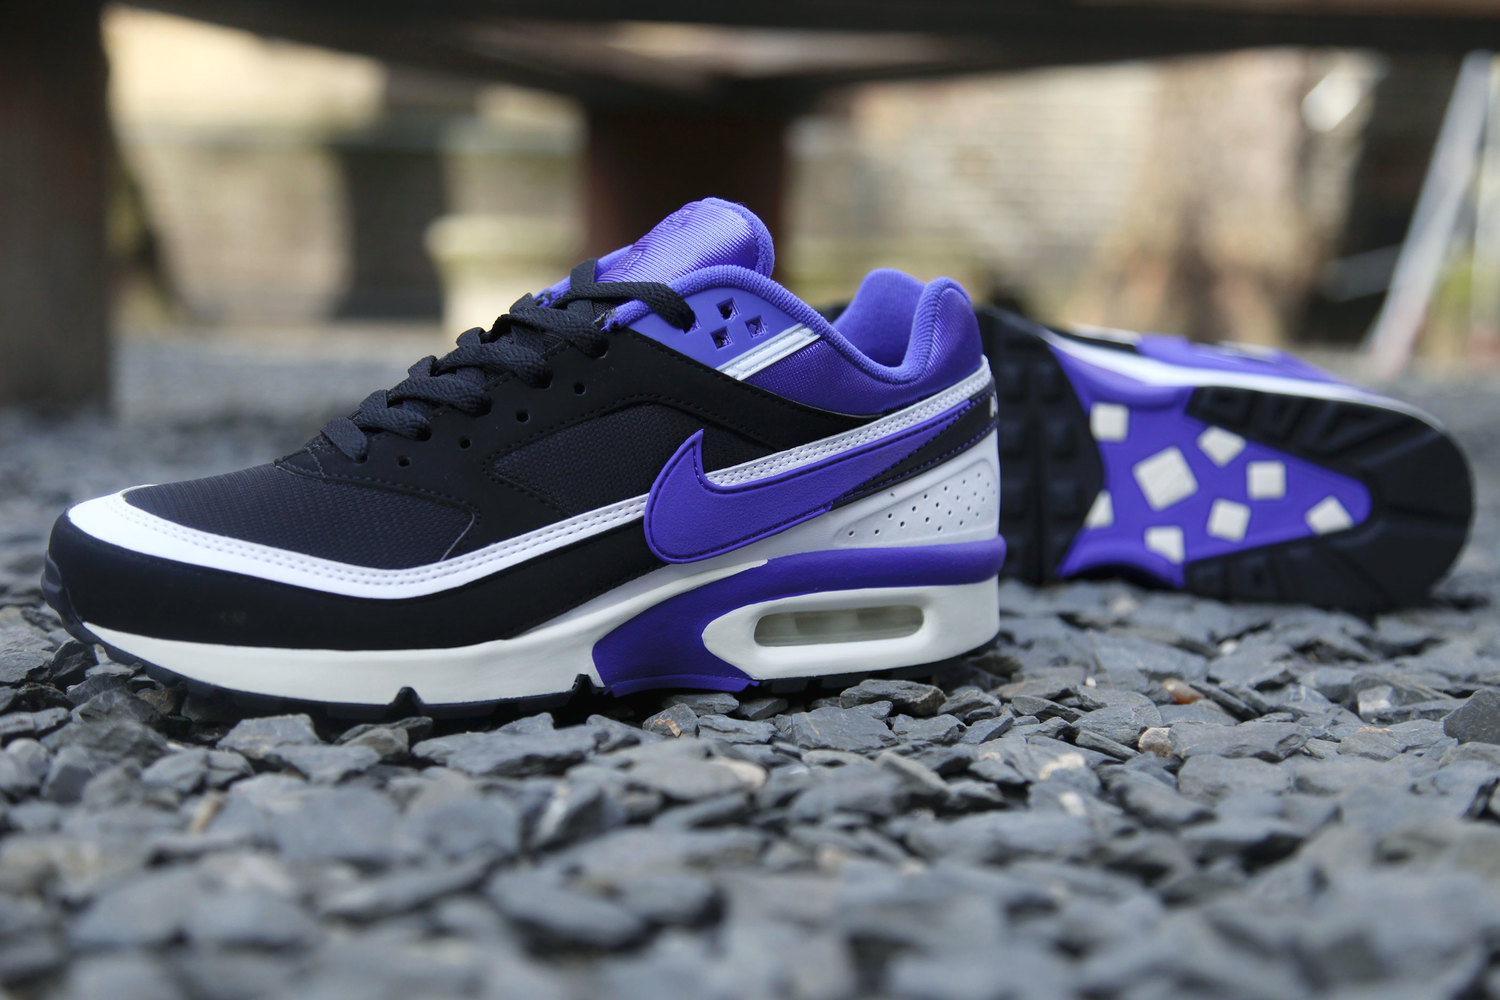 online retailer 4df65 f0df6 Wish List This OG Nike Makes Its Return On Air Max Day